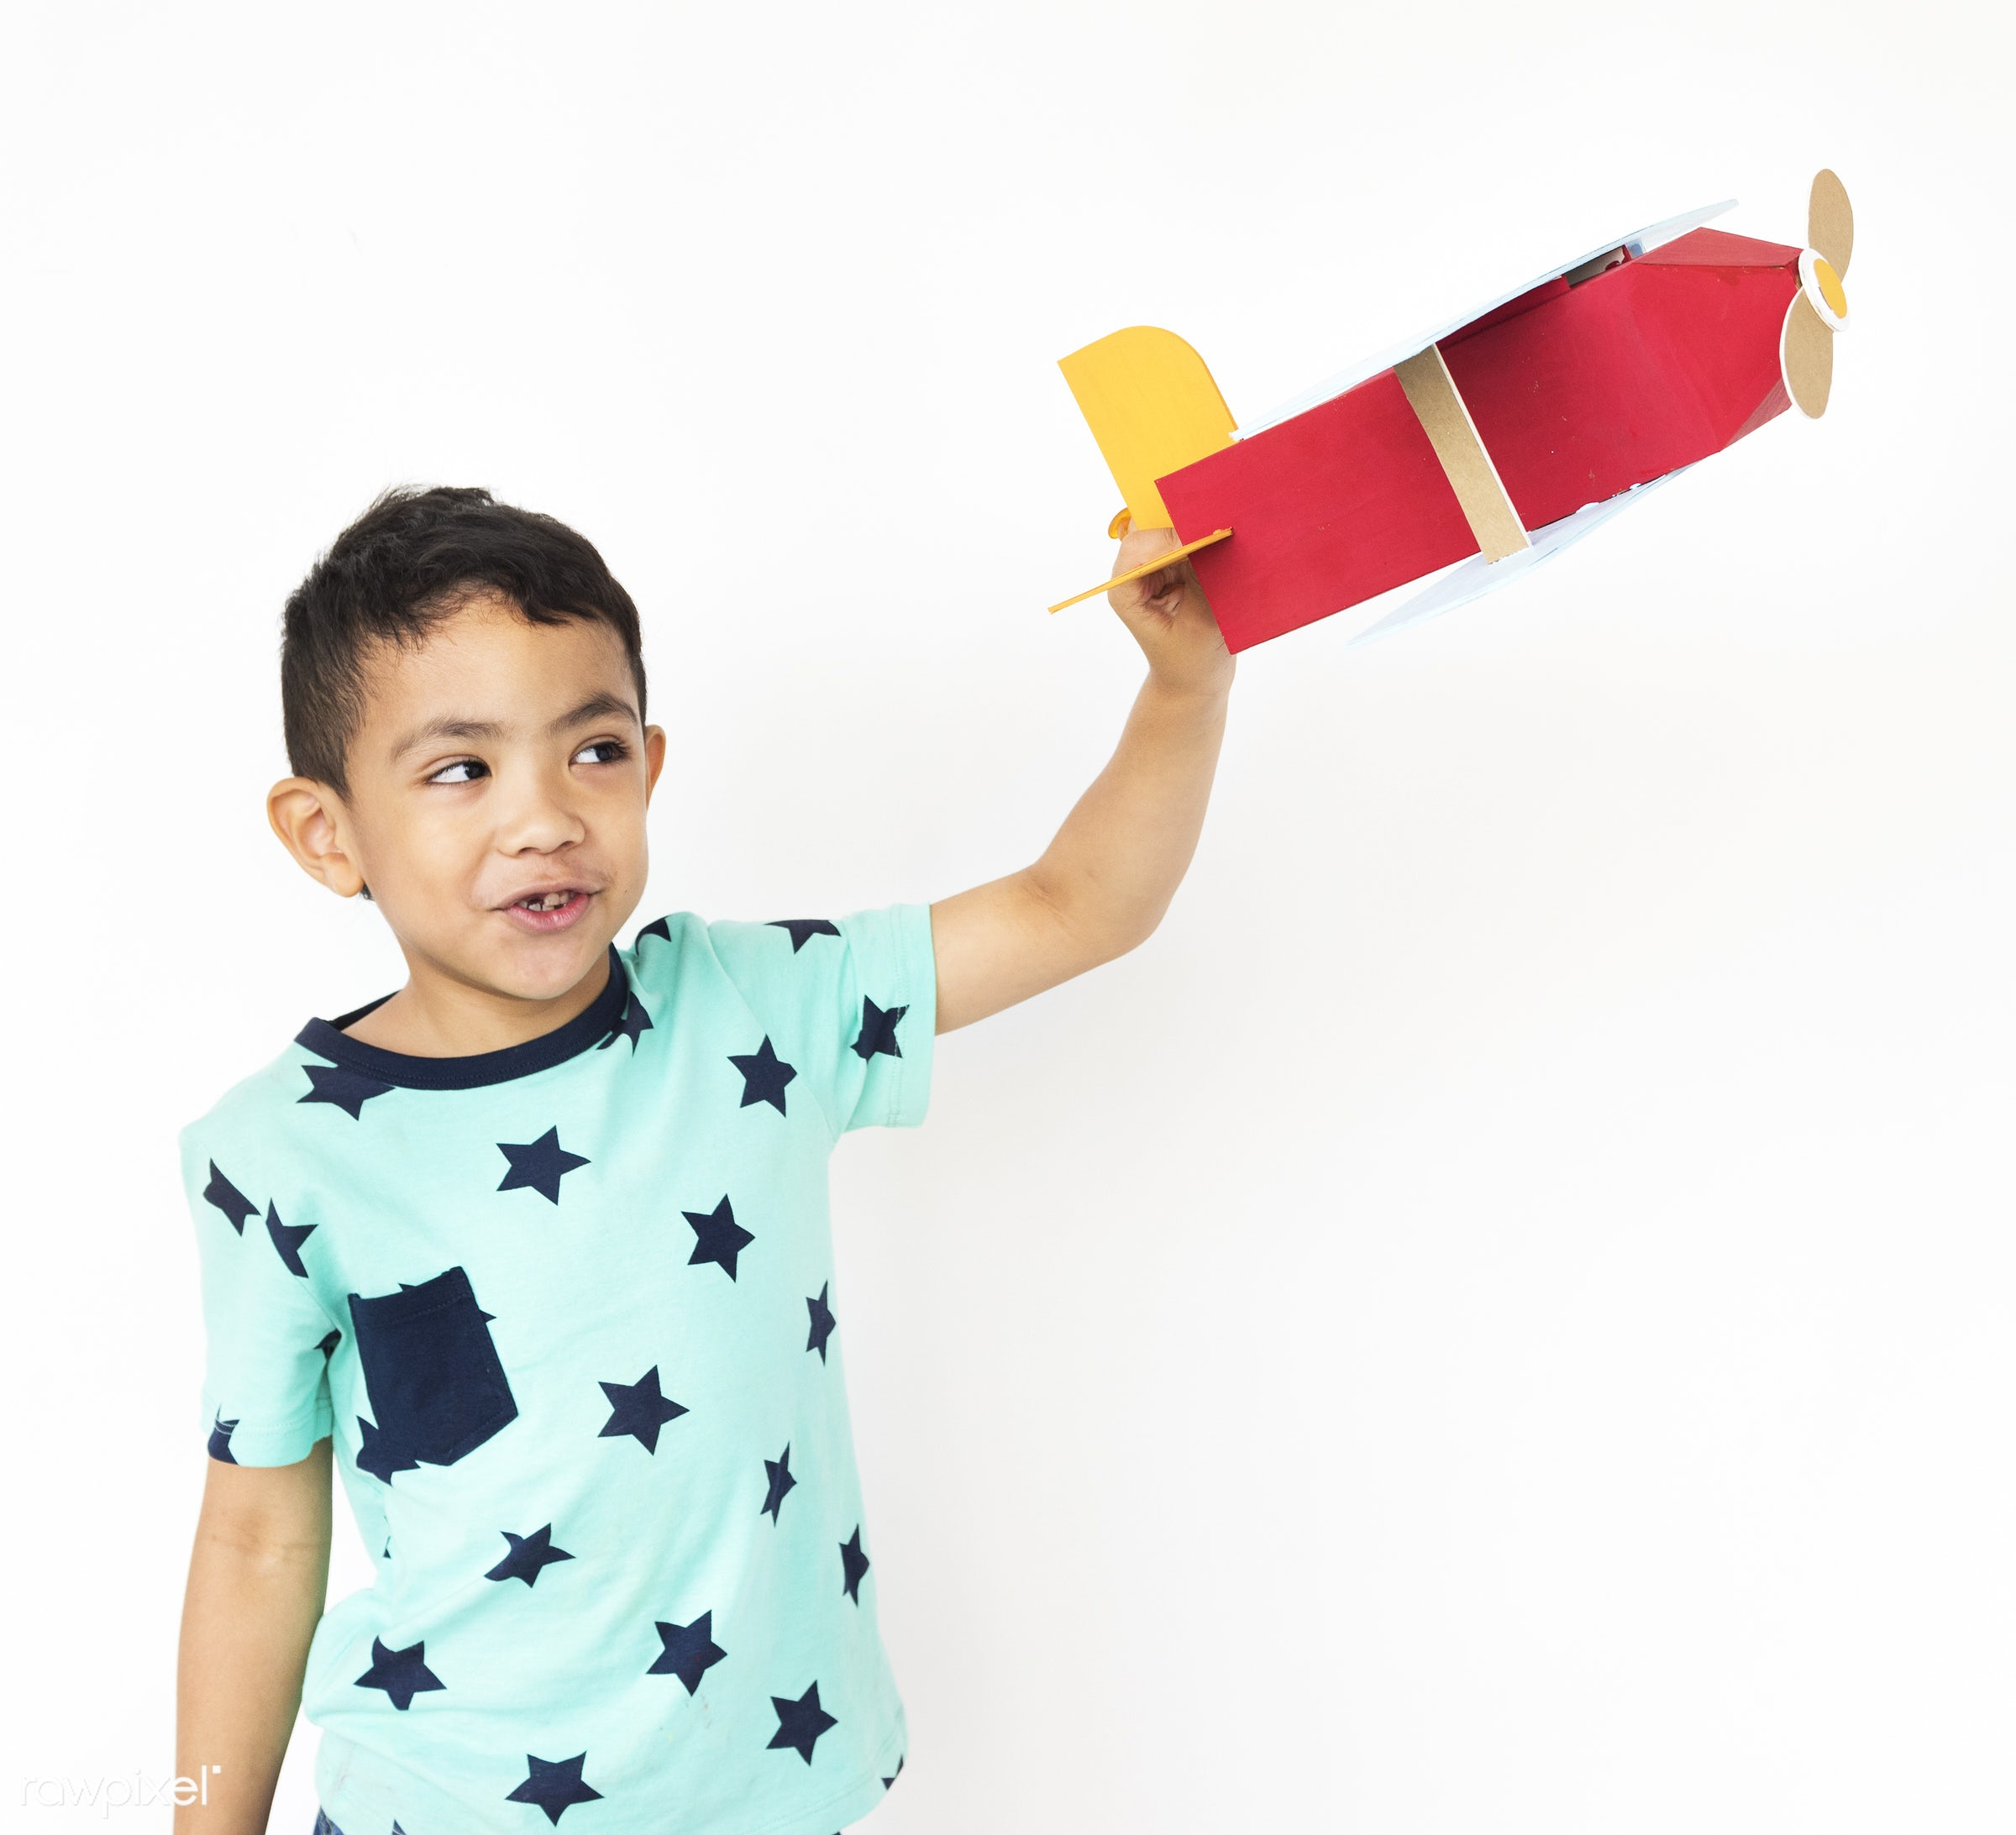 alone, boy, cheerful, child, children, isolated, kid, one, playful, smiling, young, youth, paper, paper craft, toy, airplane...